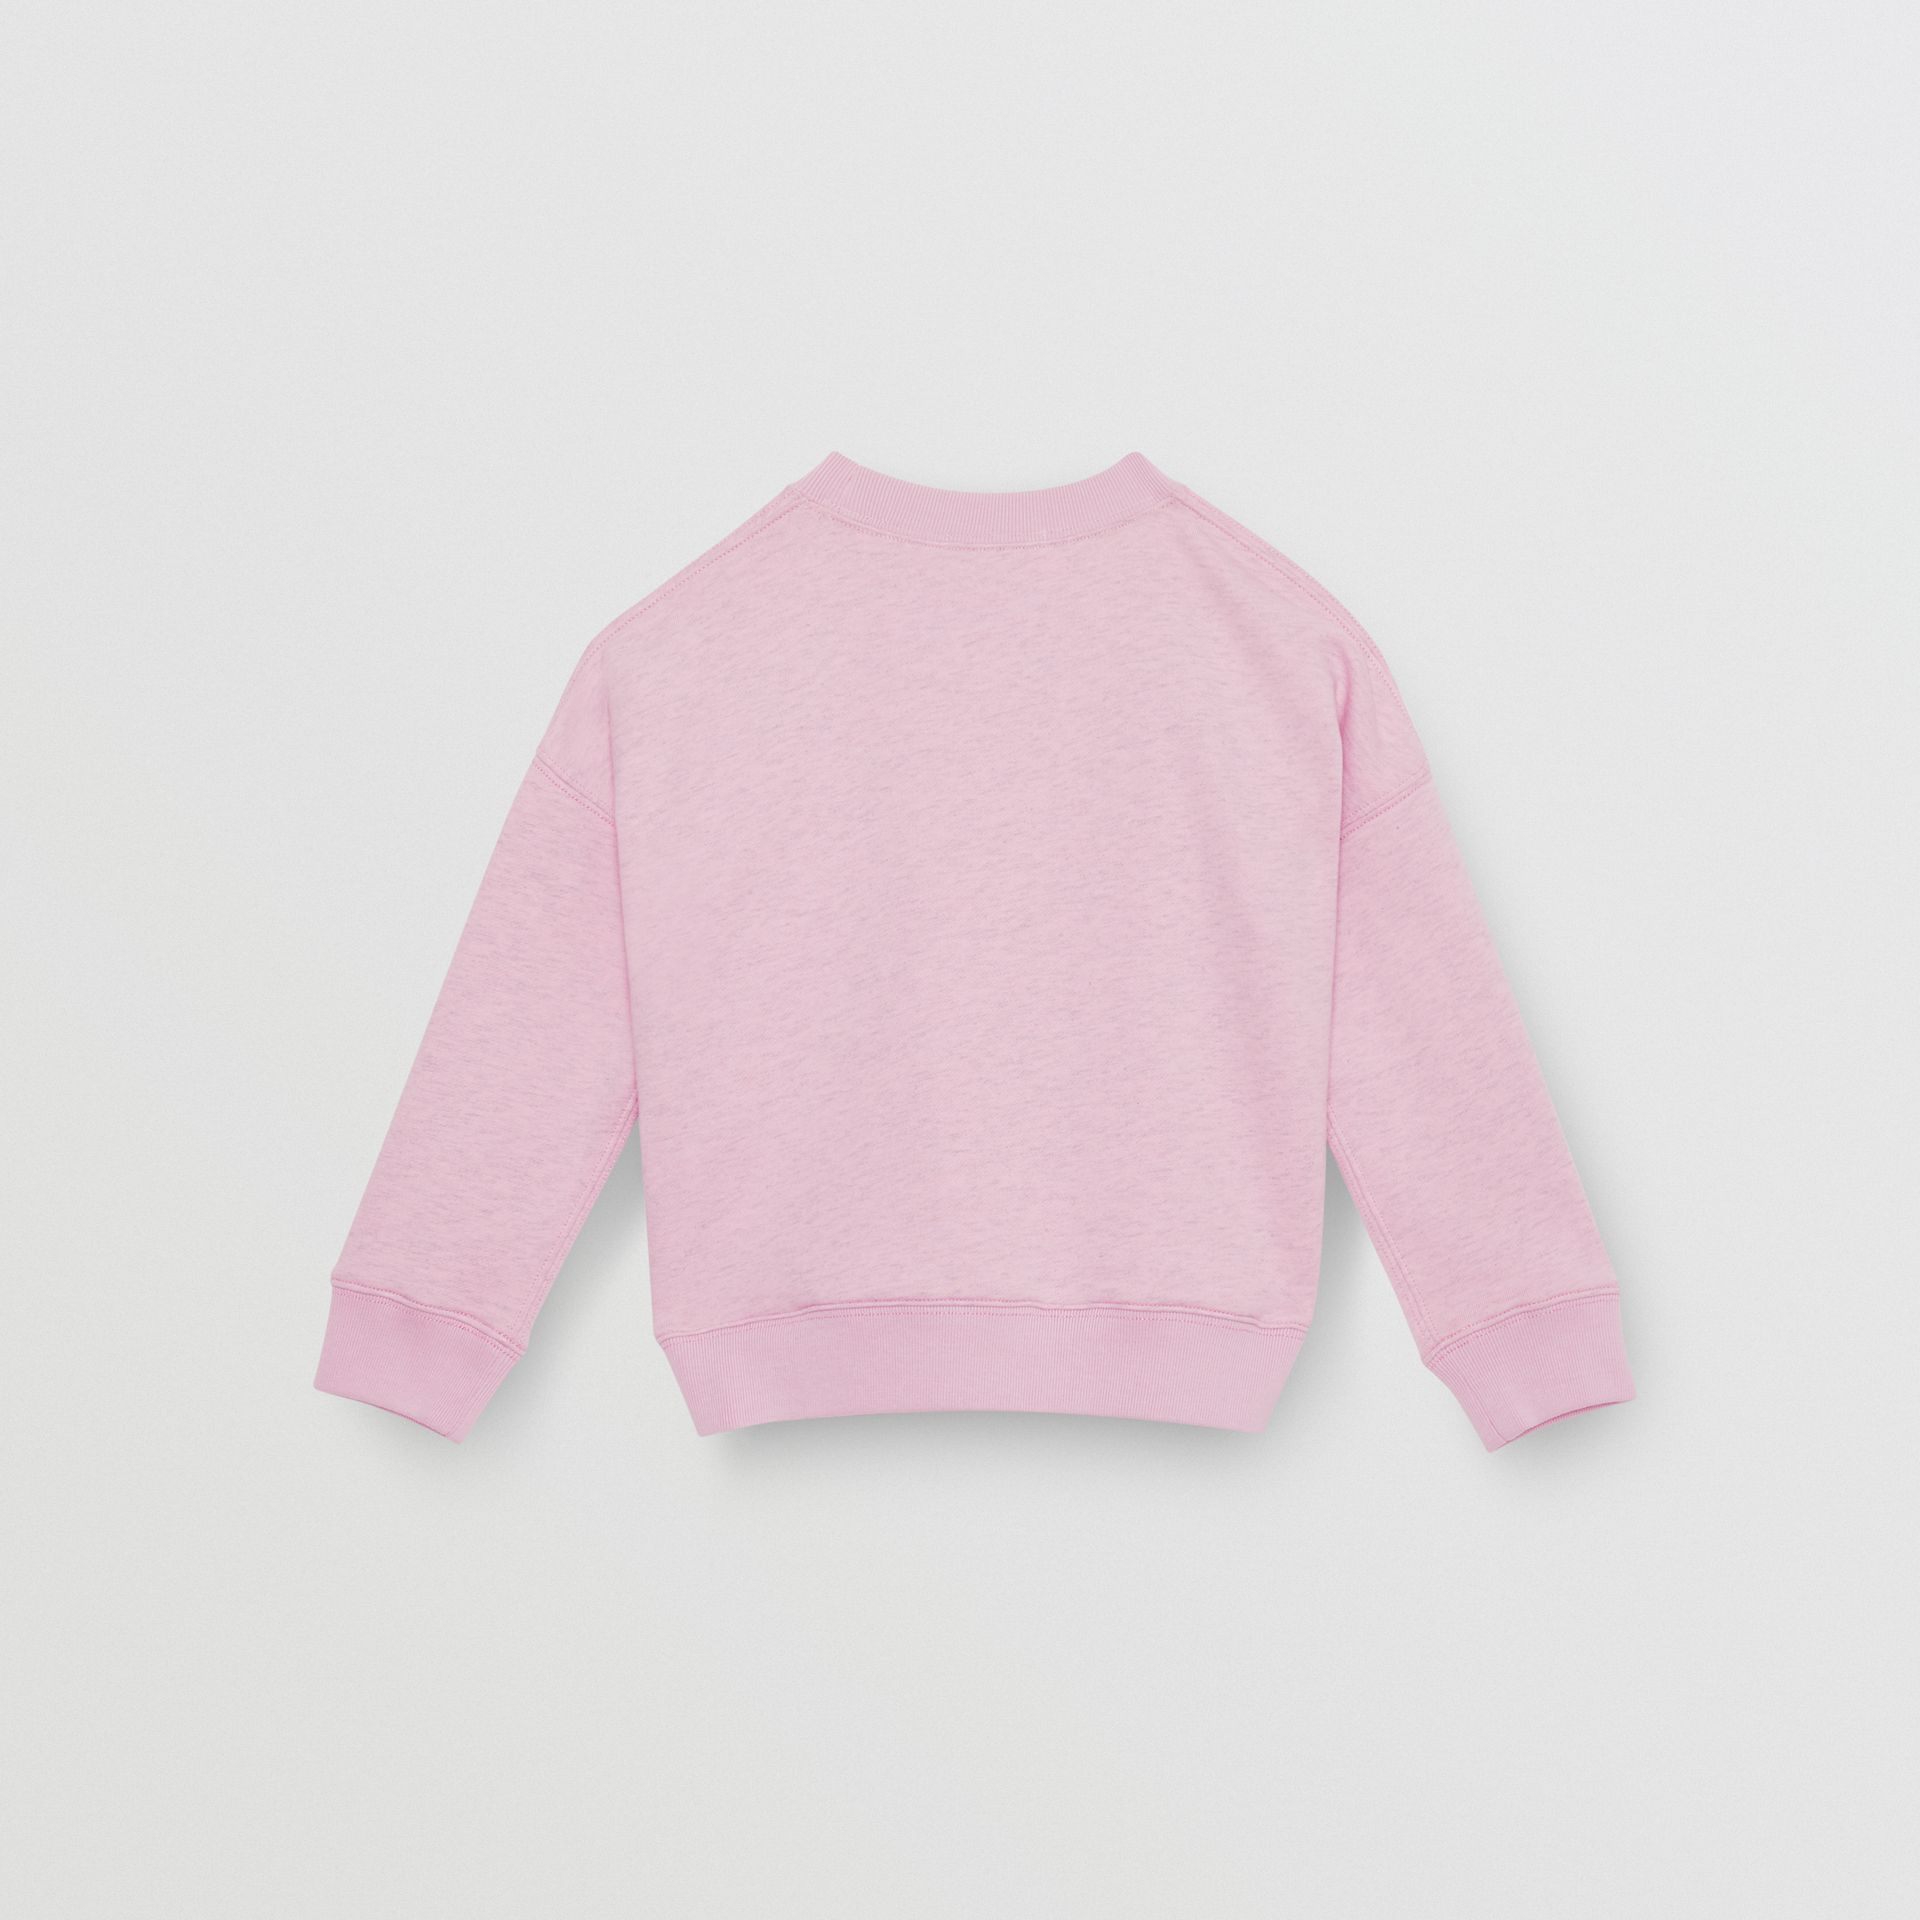 Logo Detail Cotton Sweatshirt in Pale Neon Pink - Children | Burberry - gallery image 3